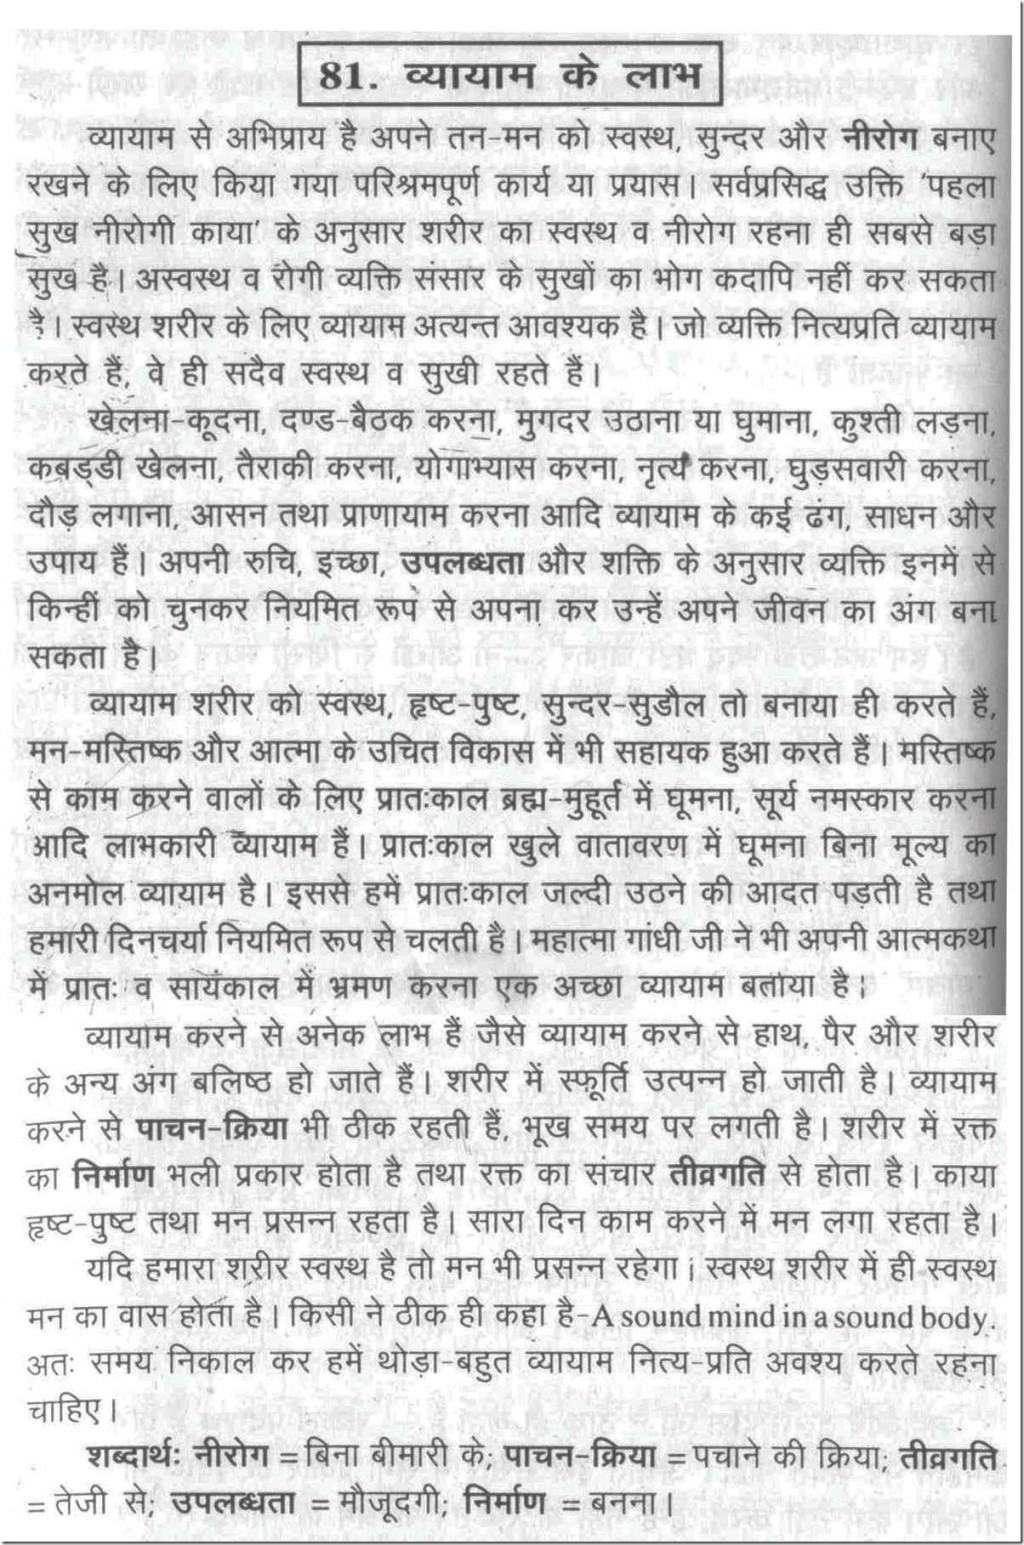 011 2563478896 Essay On Health And Fitness Through Food Good Habits In Hindi Exceptional Reading Habit Wikipedia Large